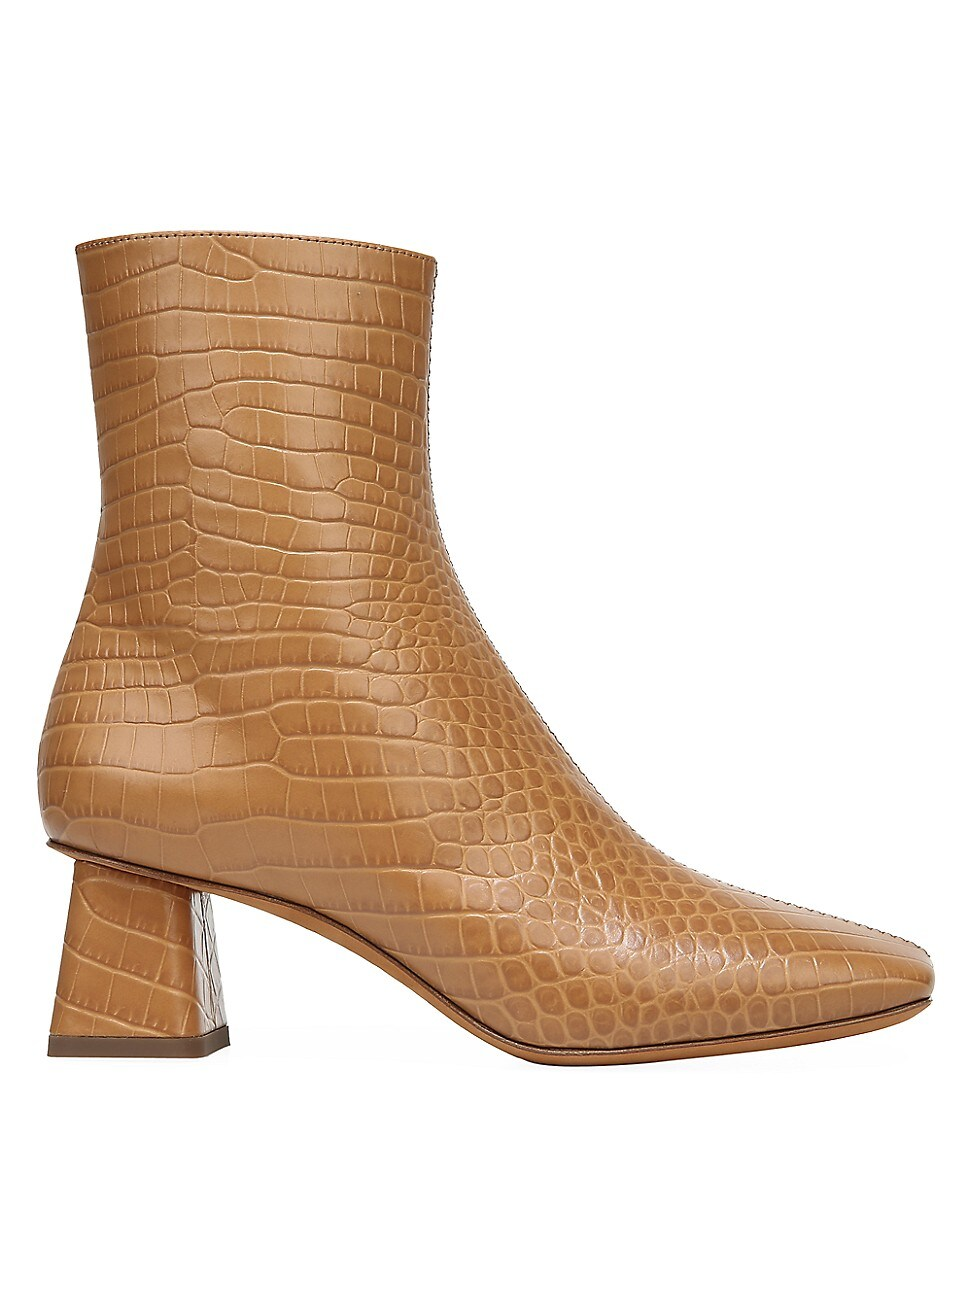 VINCE WOMEN'S KOREN SQUARE-TOE CROC-EMBOSSED LEATHER ANKLE BOOTS